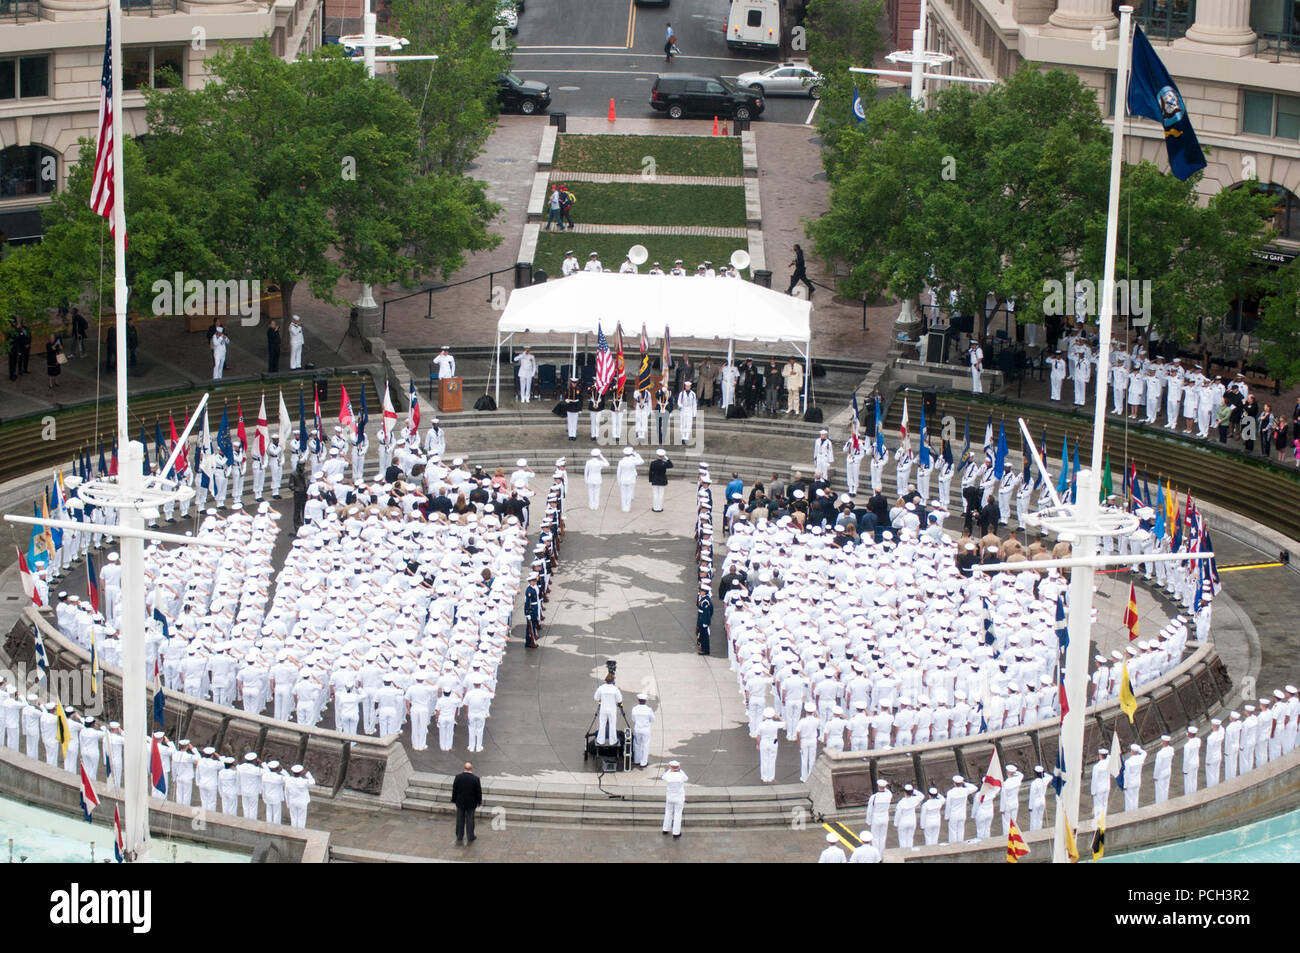 WASHINGTON (June 4, 2015) A sea of white uniforms greets visitors to the Navy Memorial in Washington, D.C. as Sailors pause to celebrate the 73rd anniversary of the Battle of Midway. The celebration held host to Marines, Navy, and Coast Guard service members, Midway veterans and a crowd of onlookers. The Battle of Midway is considered by many to be the turning point of World War II in the Pacific theater and one of the most well-known and revered victories in U.S. naval history. - Stock Image